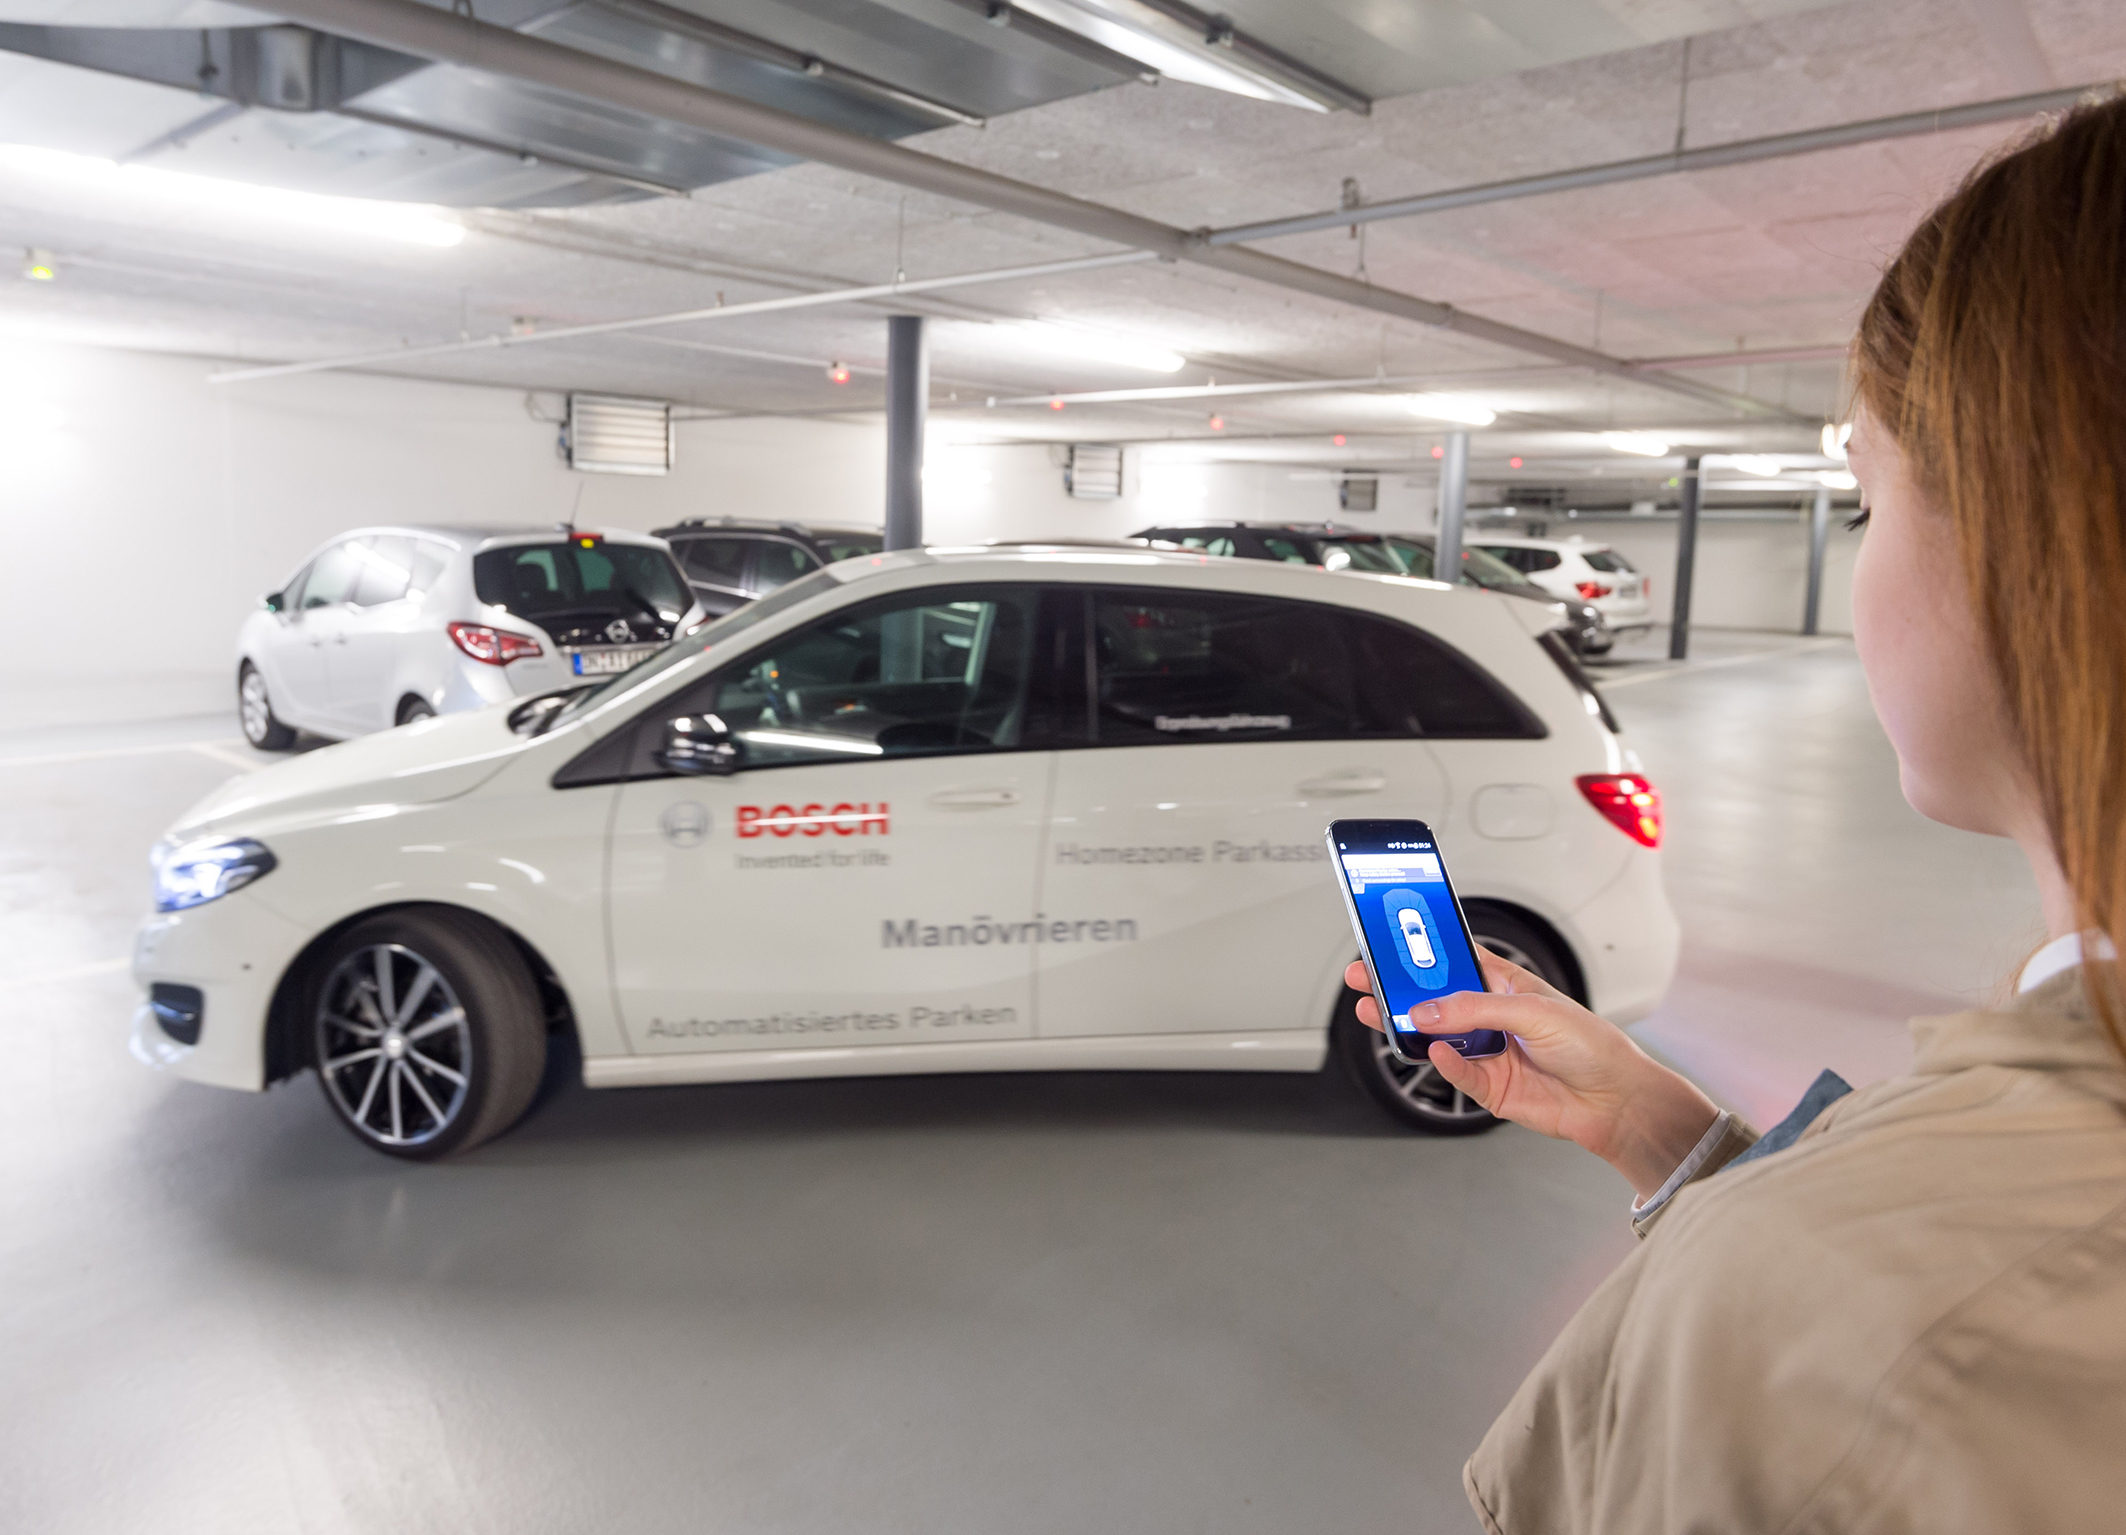 Bosch technology makes anyone a professional parker